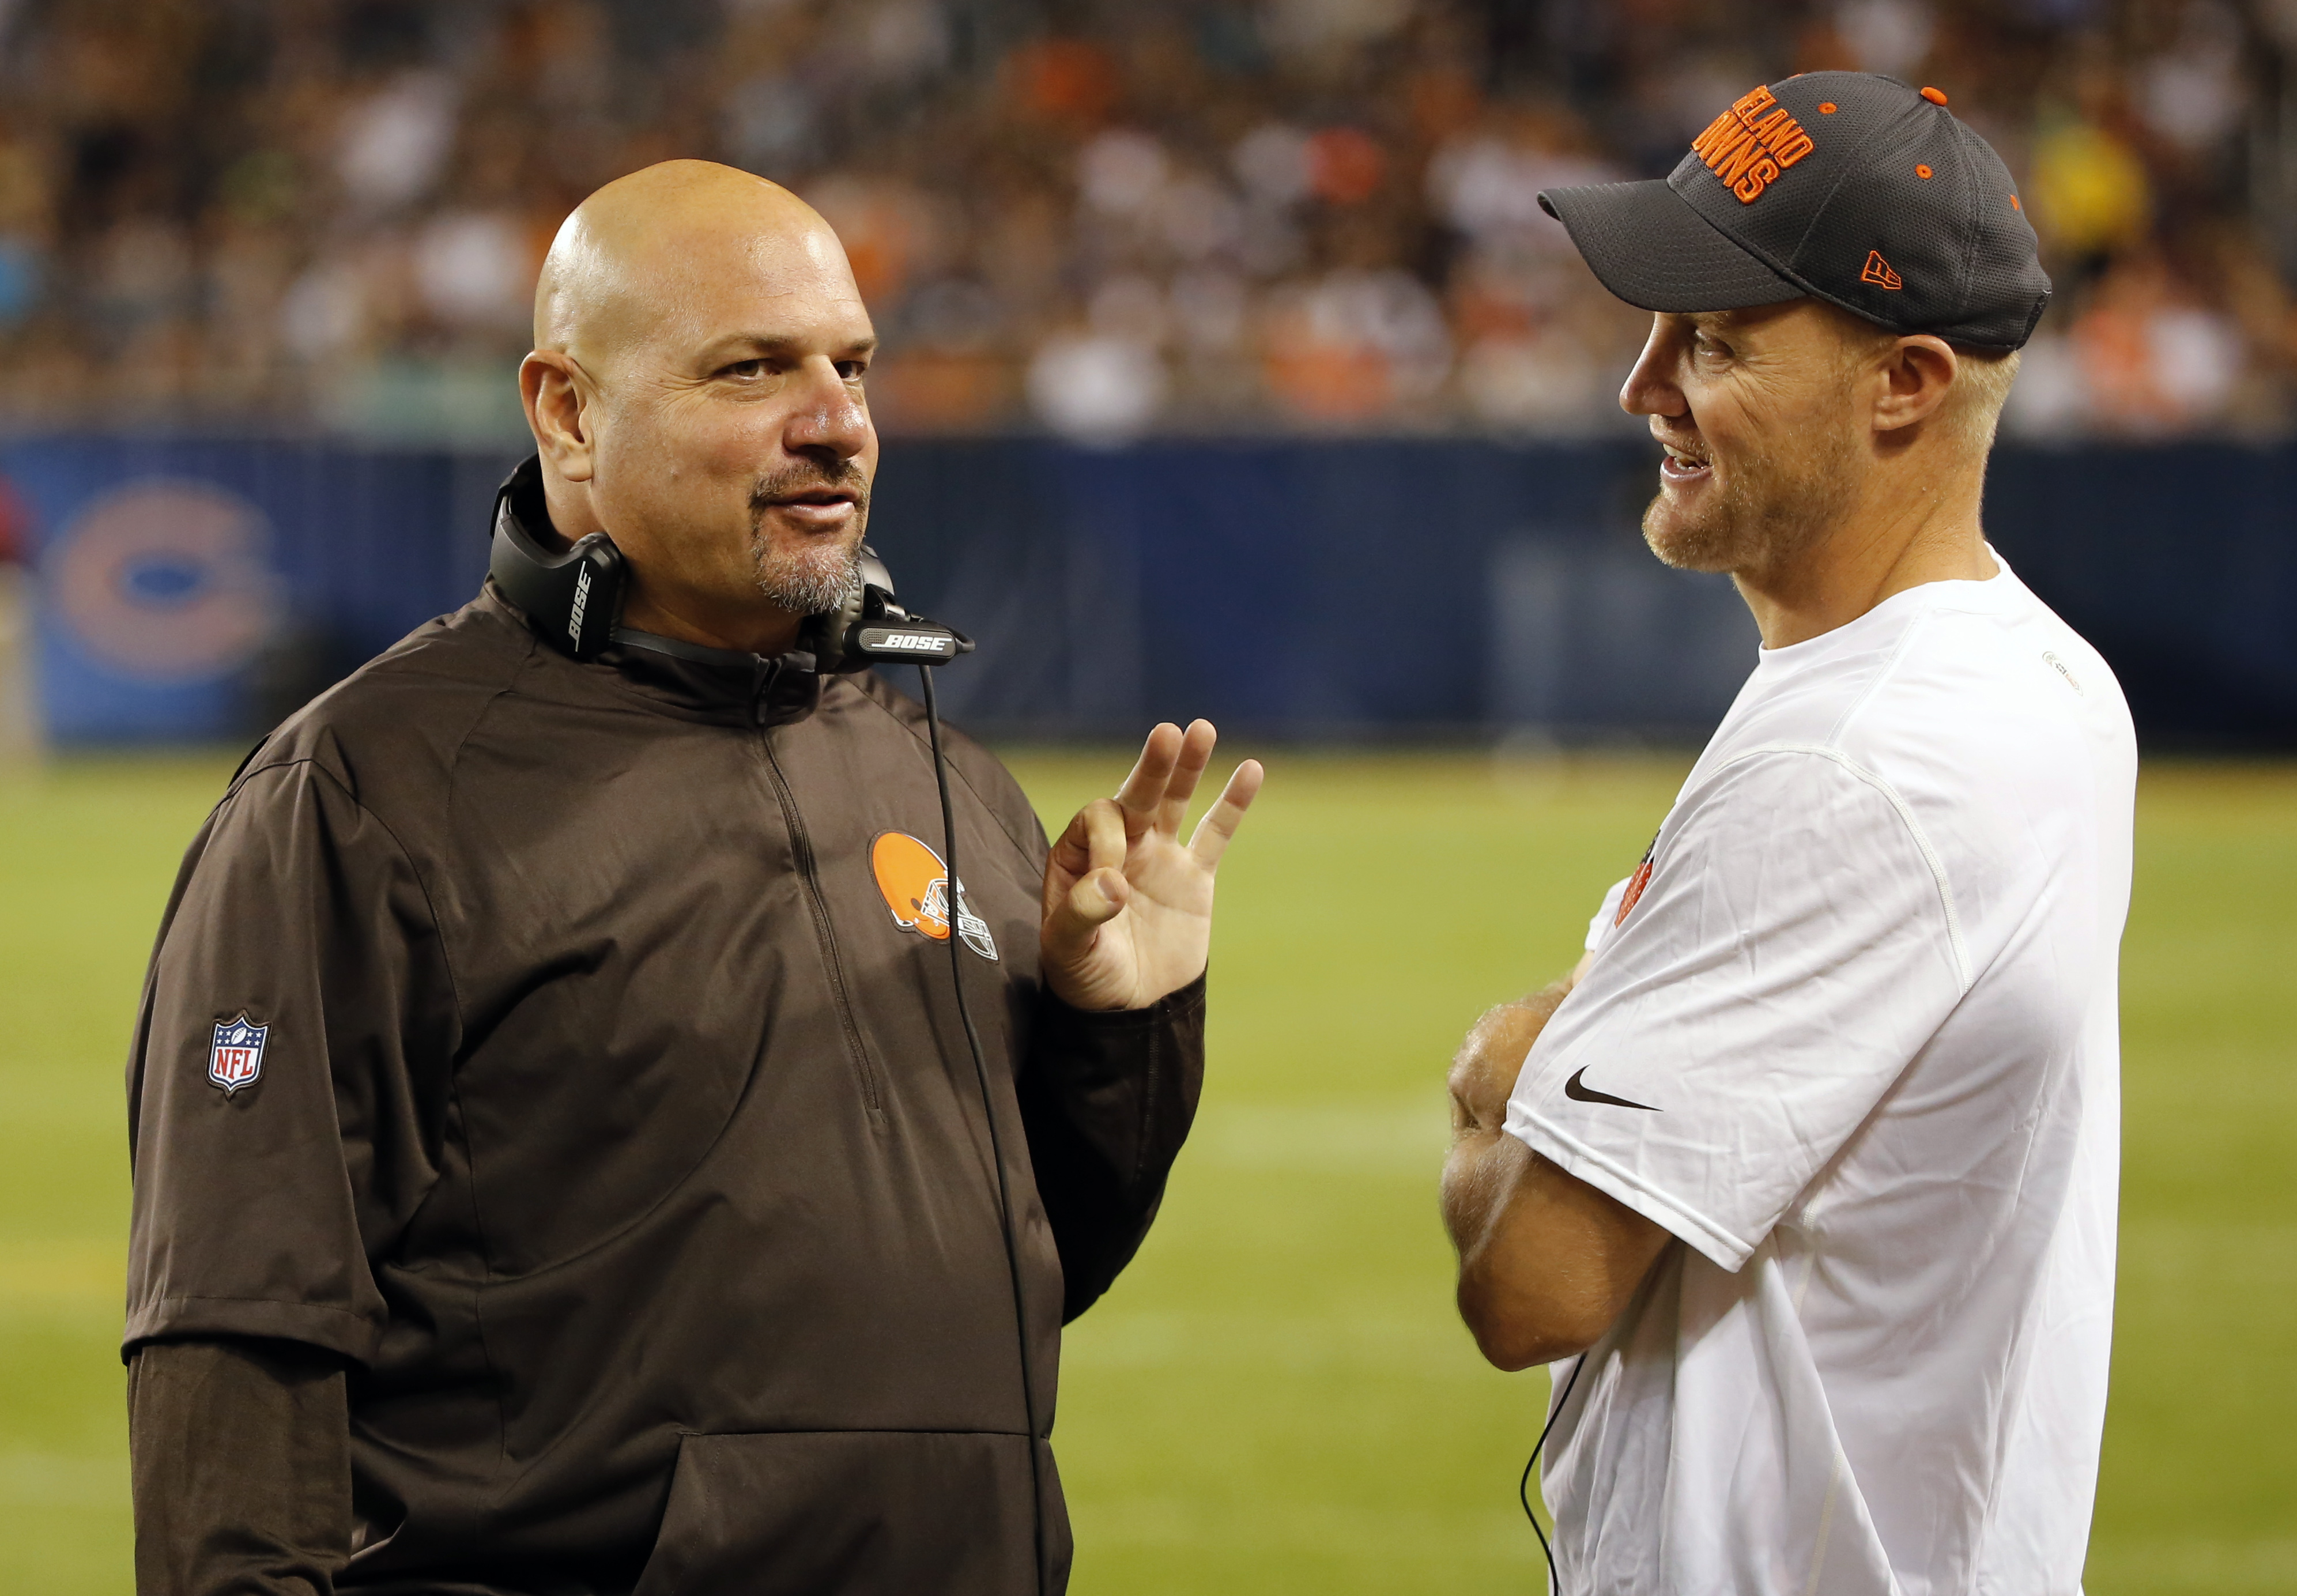 FILE - In this Sept. 3, 2015, file phto, Cleveland Browns head coach Mike Pettine talks to Cleveland Browns quarterback Josh McCown during the second half of an NFL preseason football game against the Chicago Bears in Chicago. At 36, Browns quarterback Jo